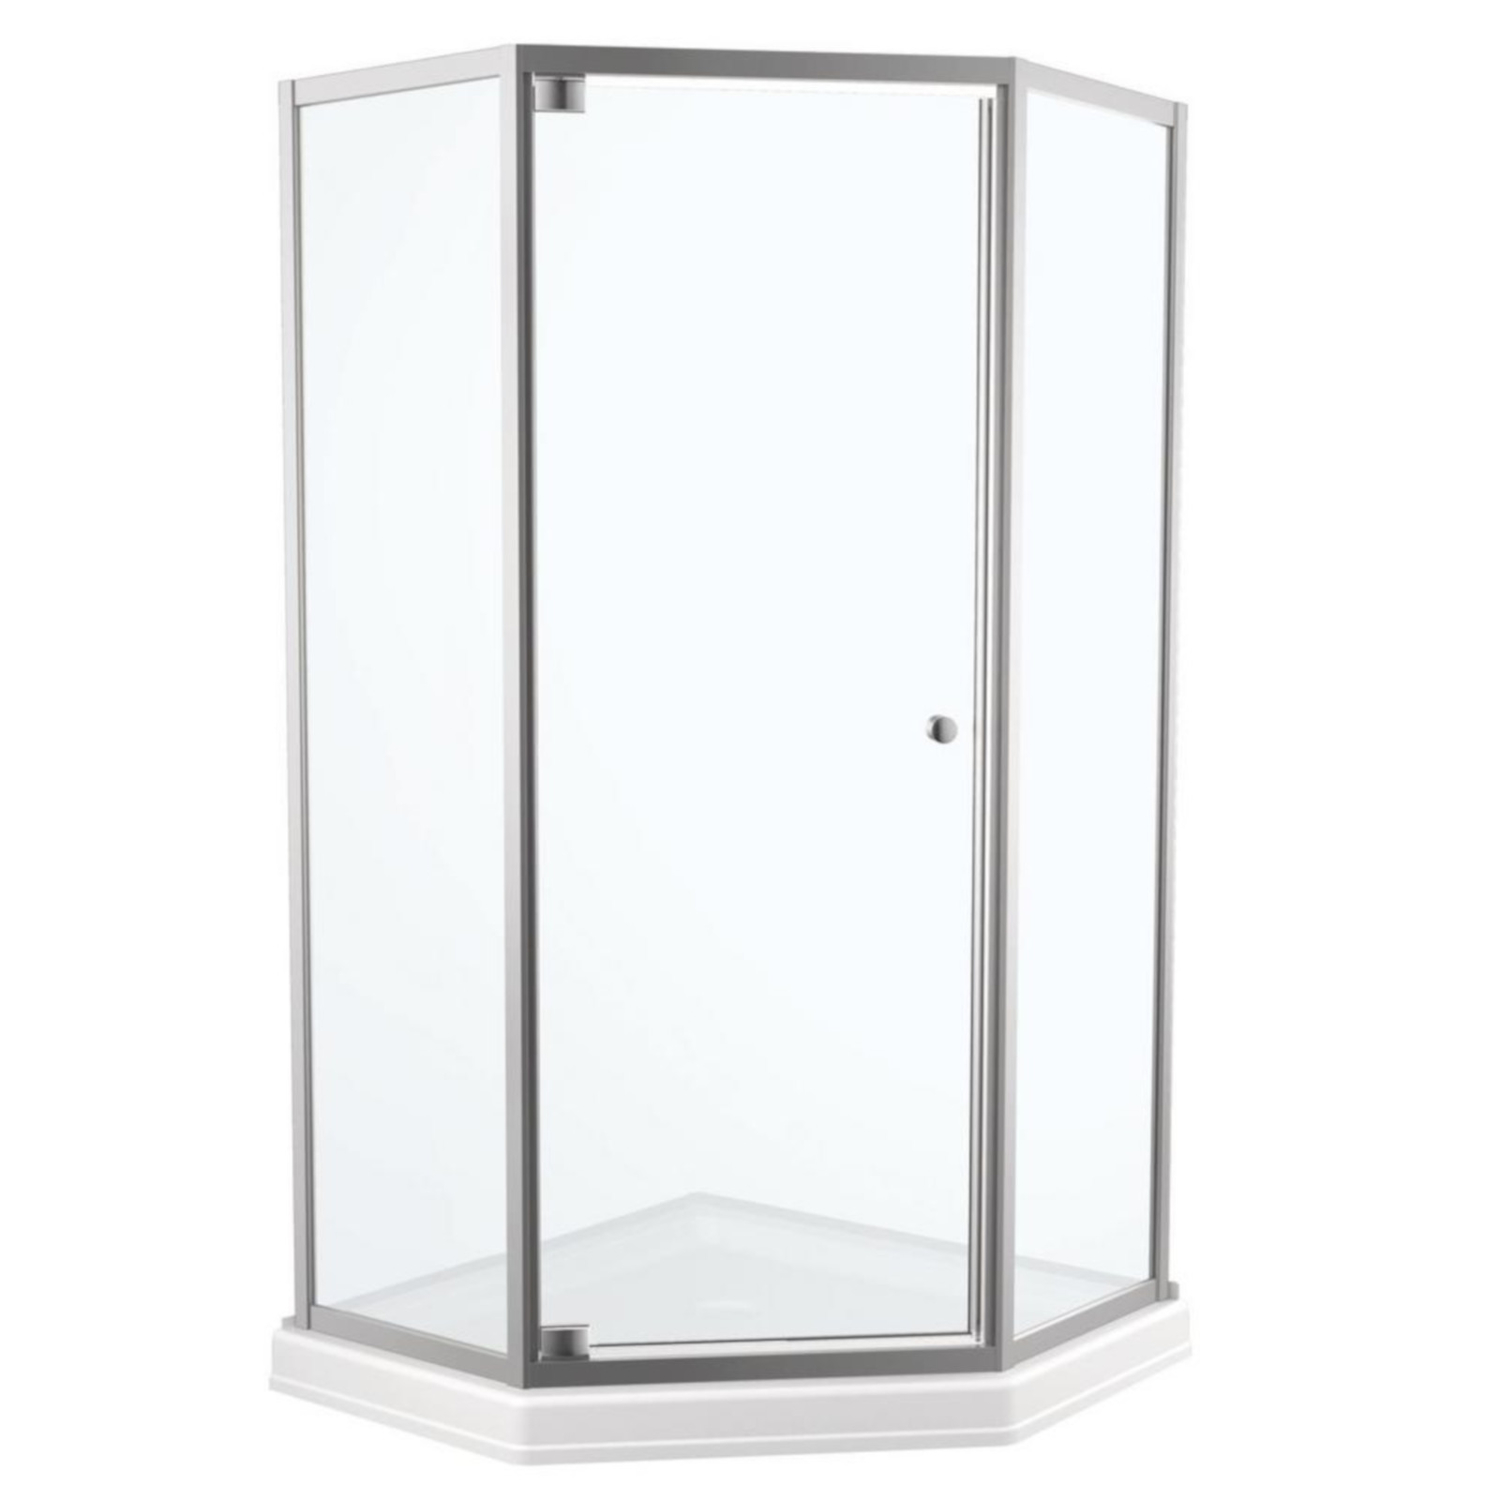 Delta 67 1 2 In H X 26 In W Chrome Shower Door Ace Hardware